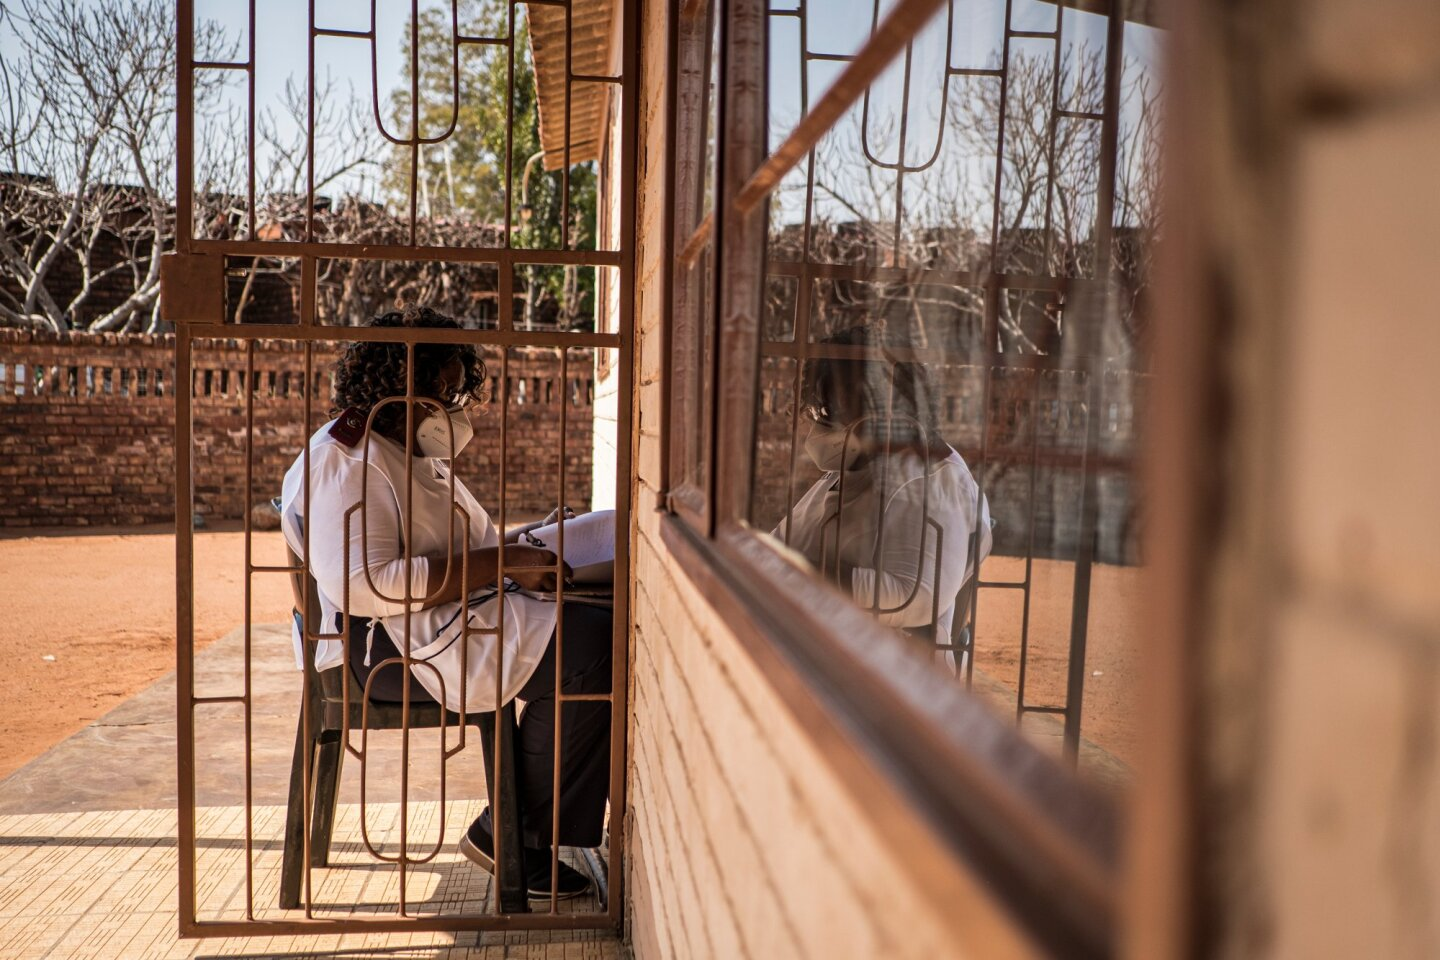 Sister Rachel Asitile (61) is pictured sitting, in accordance with social distancing measures, outside the home of a patient who tested positive for COVID-19 to do a follow up assessment. | Thomson Reuters Foundation/Gulshan Khan